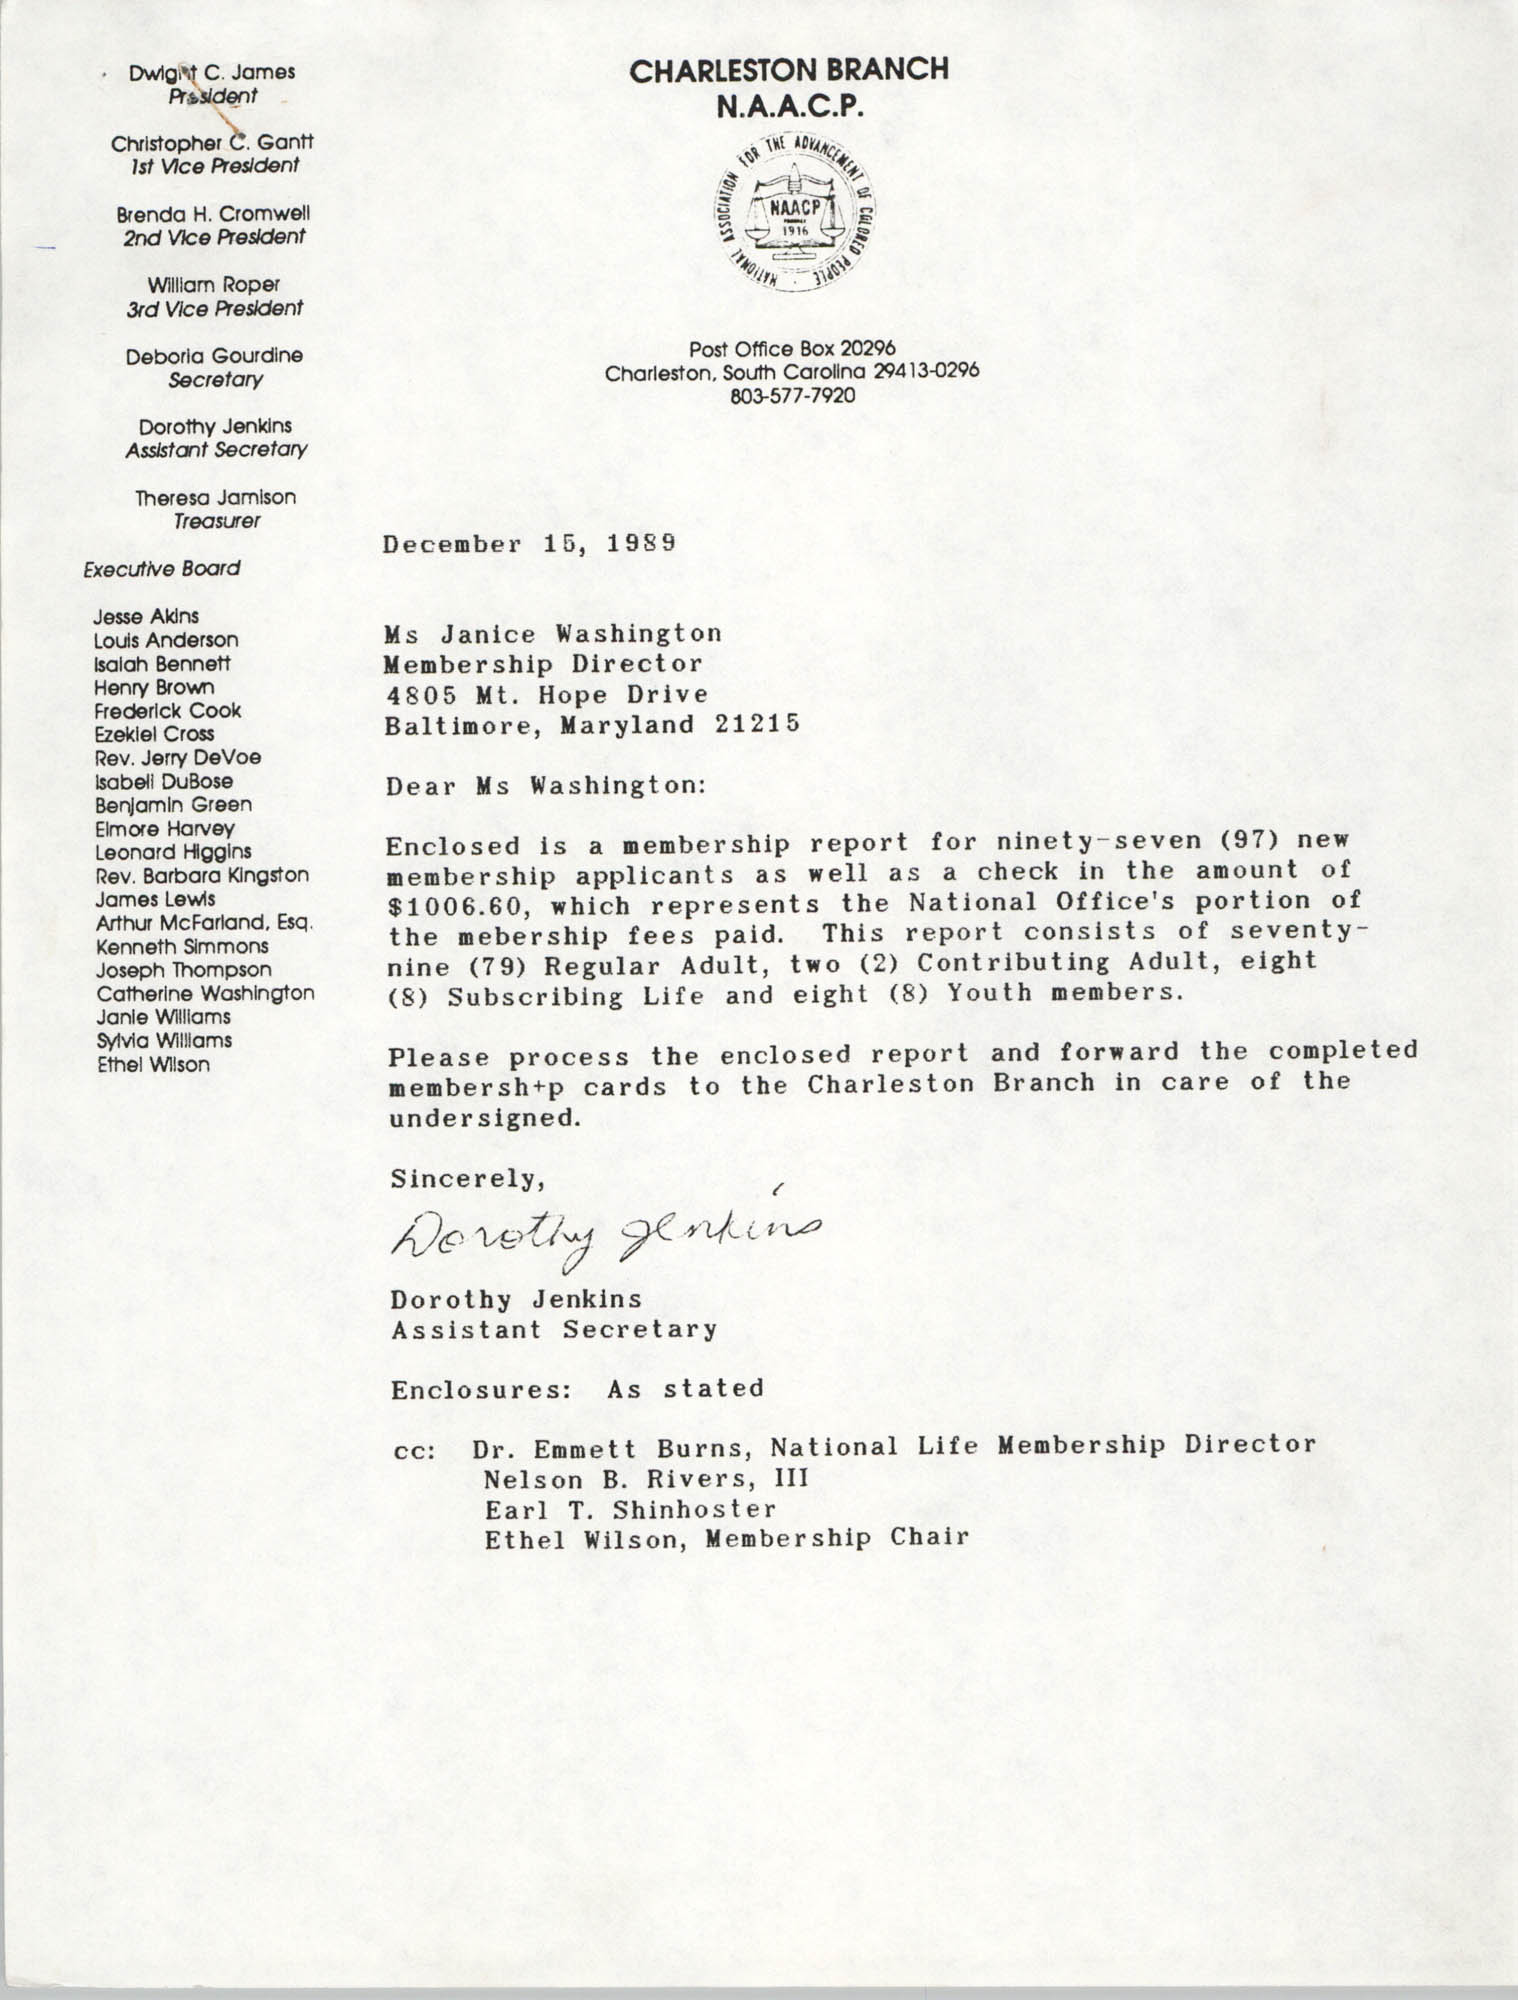 Letter from Dorothy Jenkins to Janice Washington, NAACP, December 15, 1989